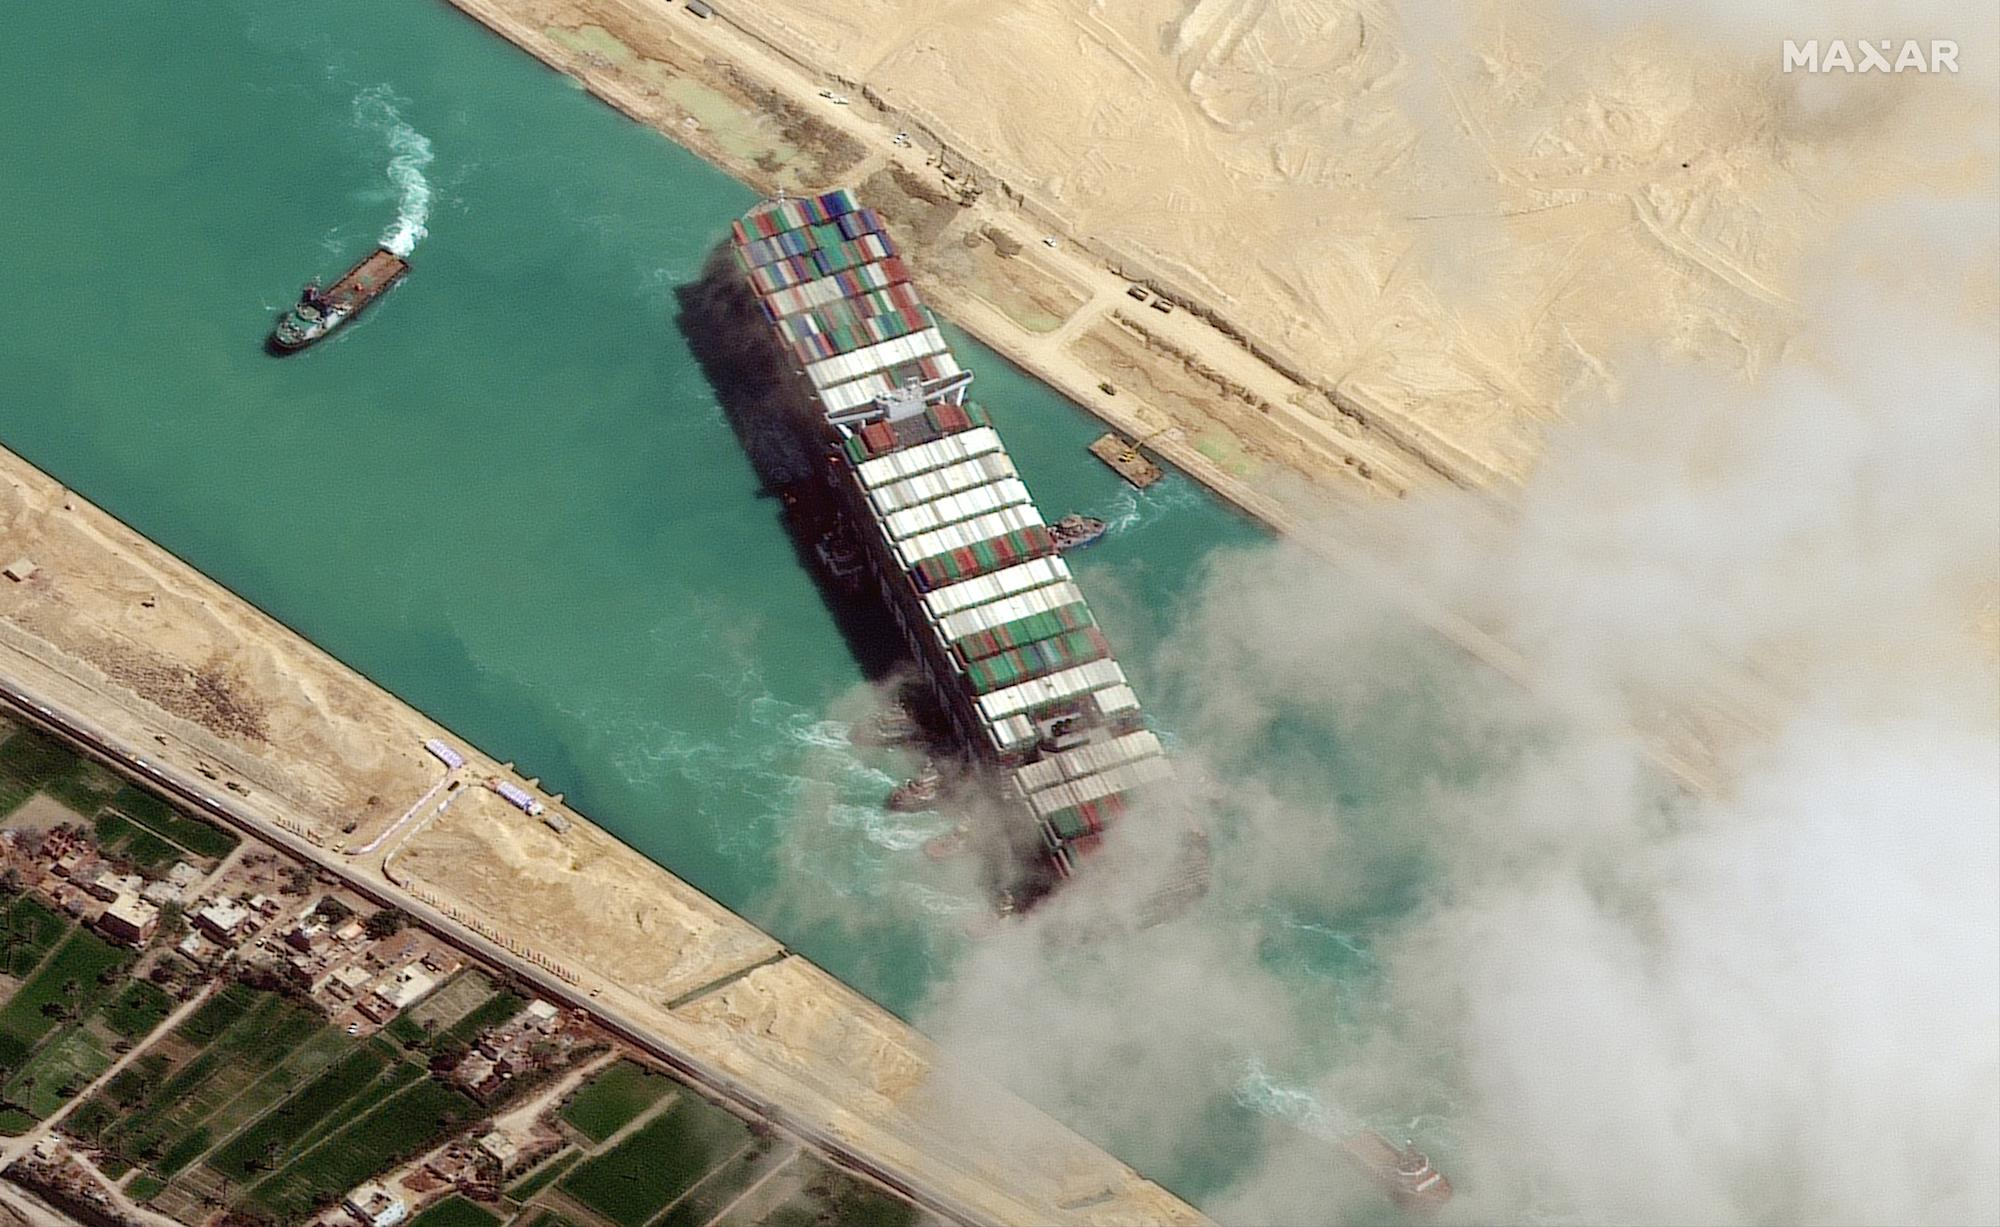 Egypt demands $1.18bn penalty over Suez Canal blockage